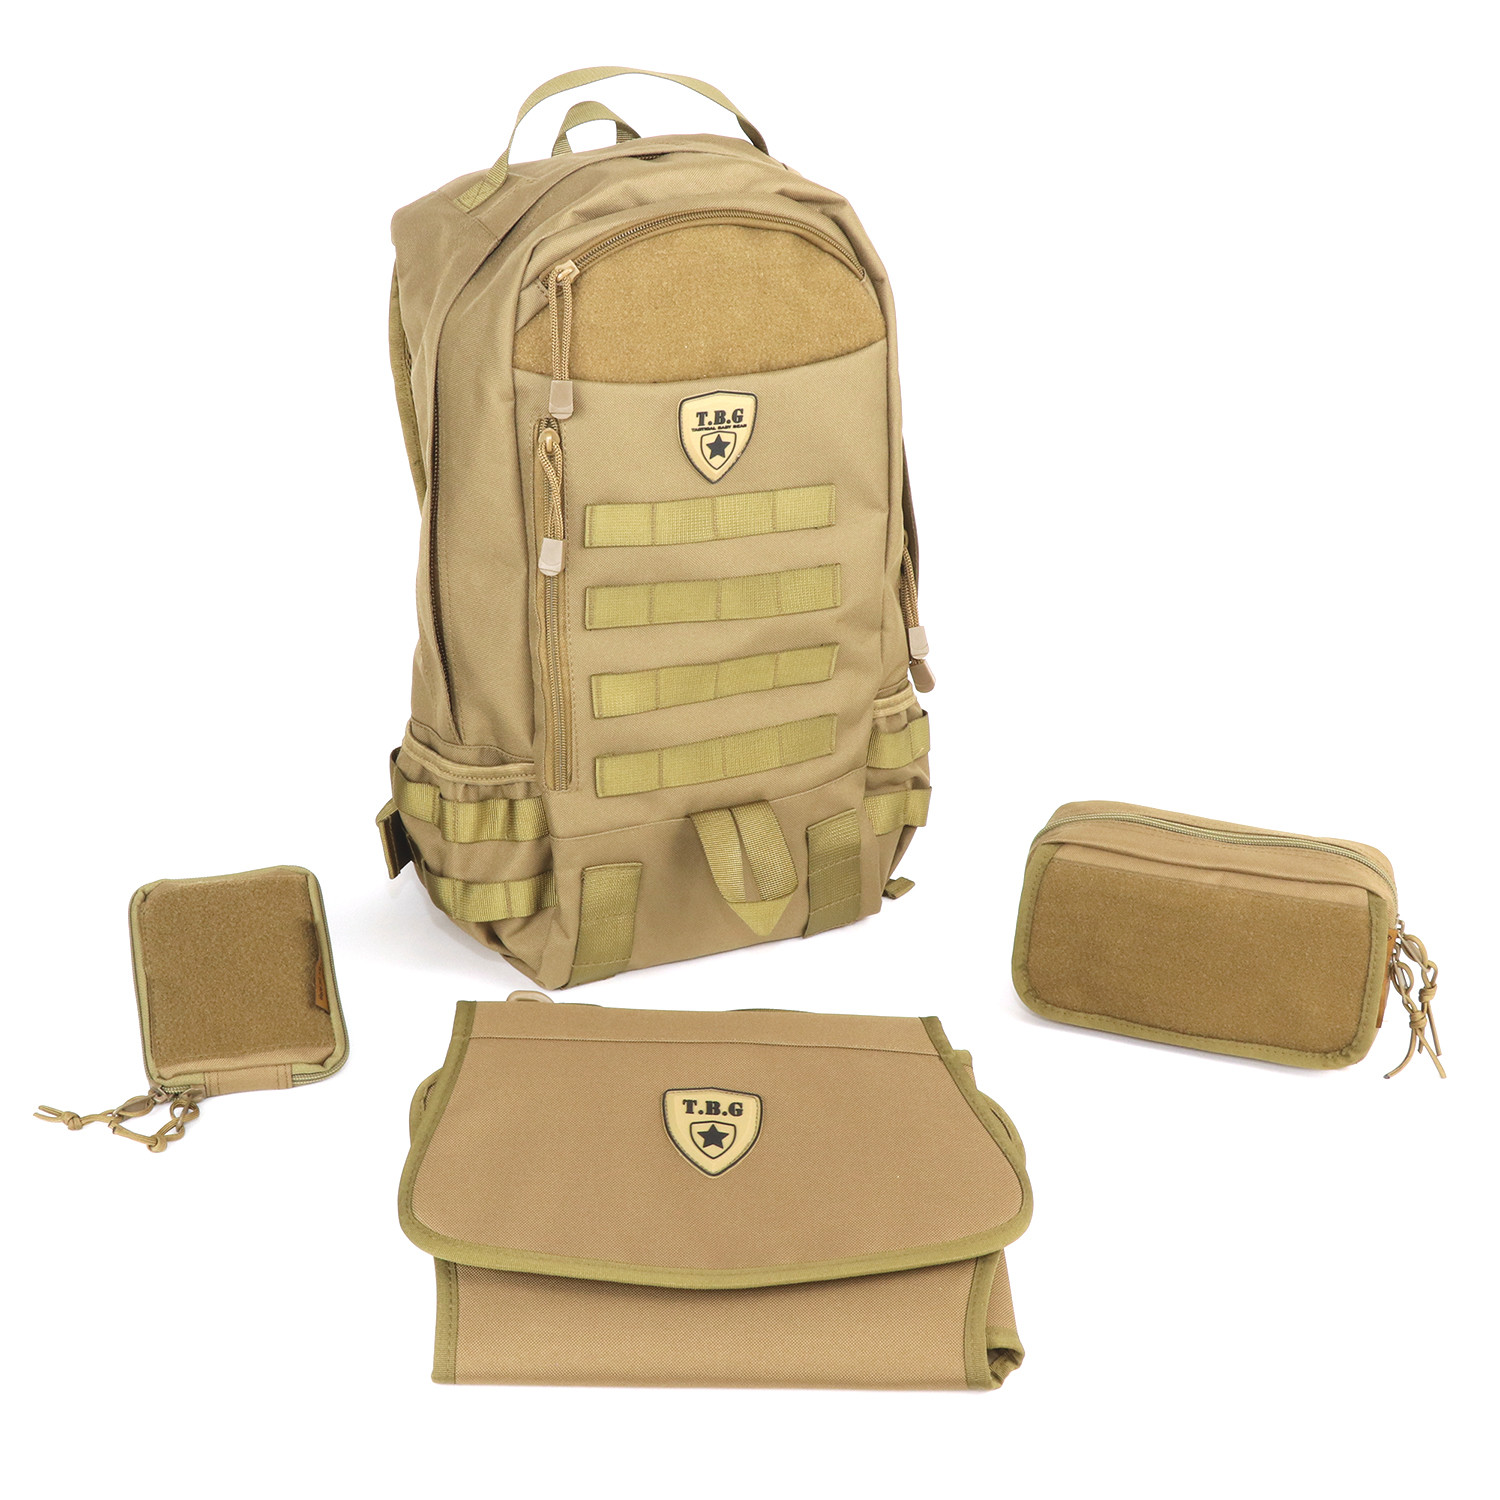 b9e66b62307 TBG DayPack 2.0 Combo Set (Coyote Brown) - Tactical Baby Gear ...